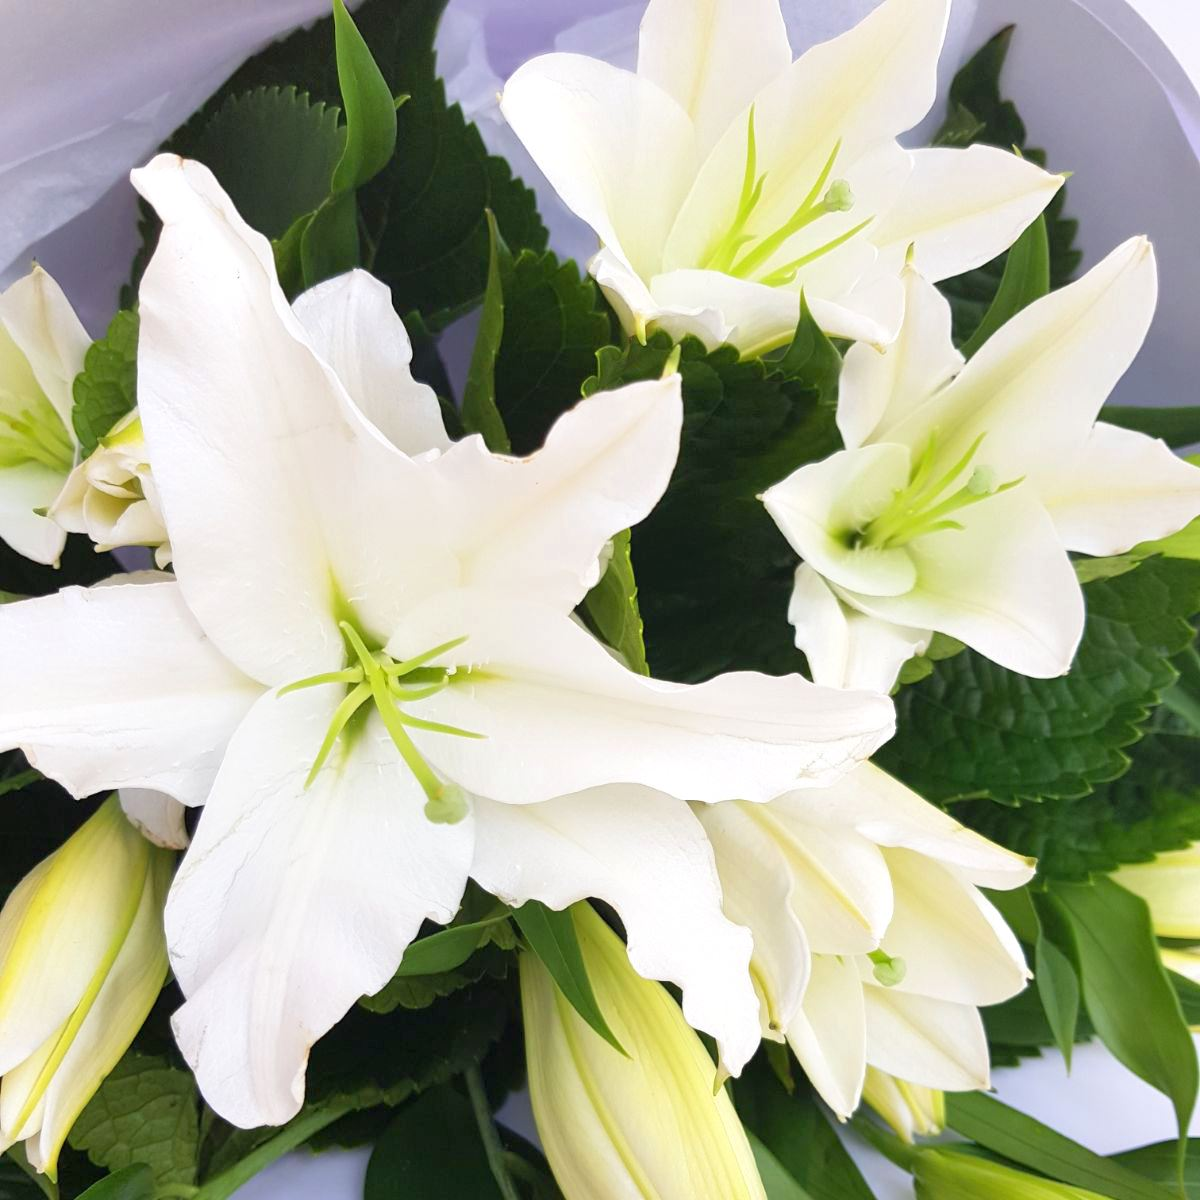 White lilies flower bouquets free delivery flying flowers picture of white lilies picture of white lilies izmirmasajfo Choice Image